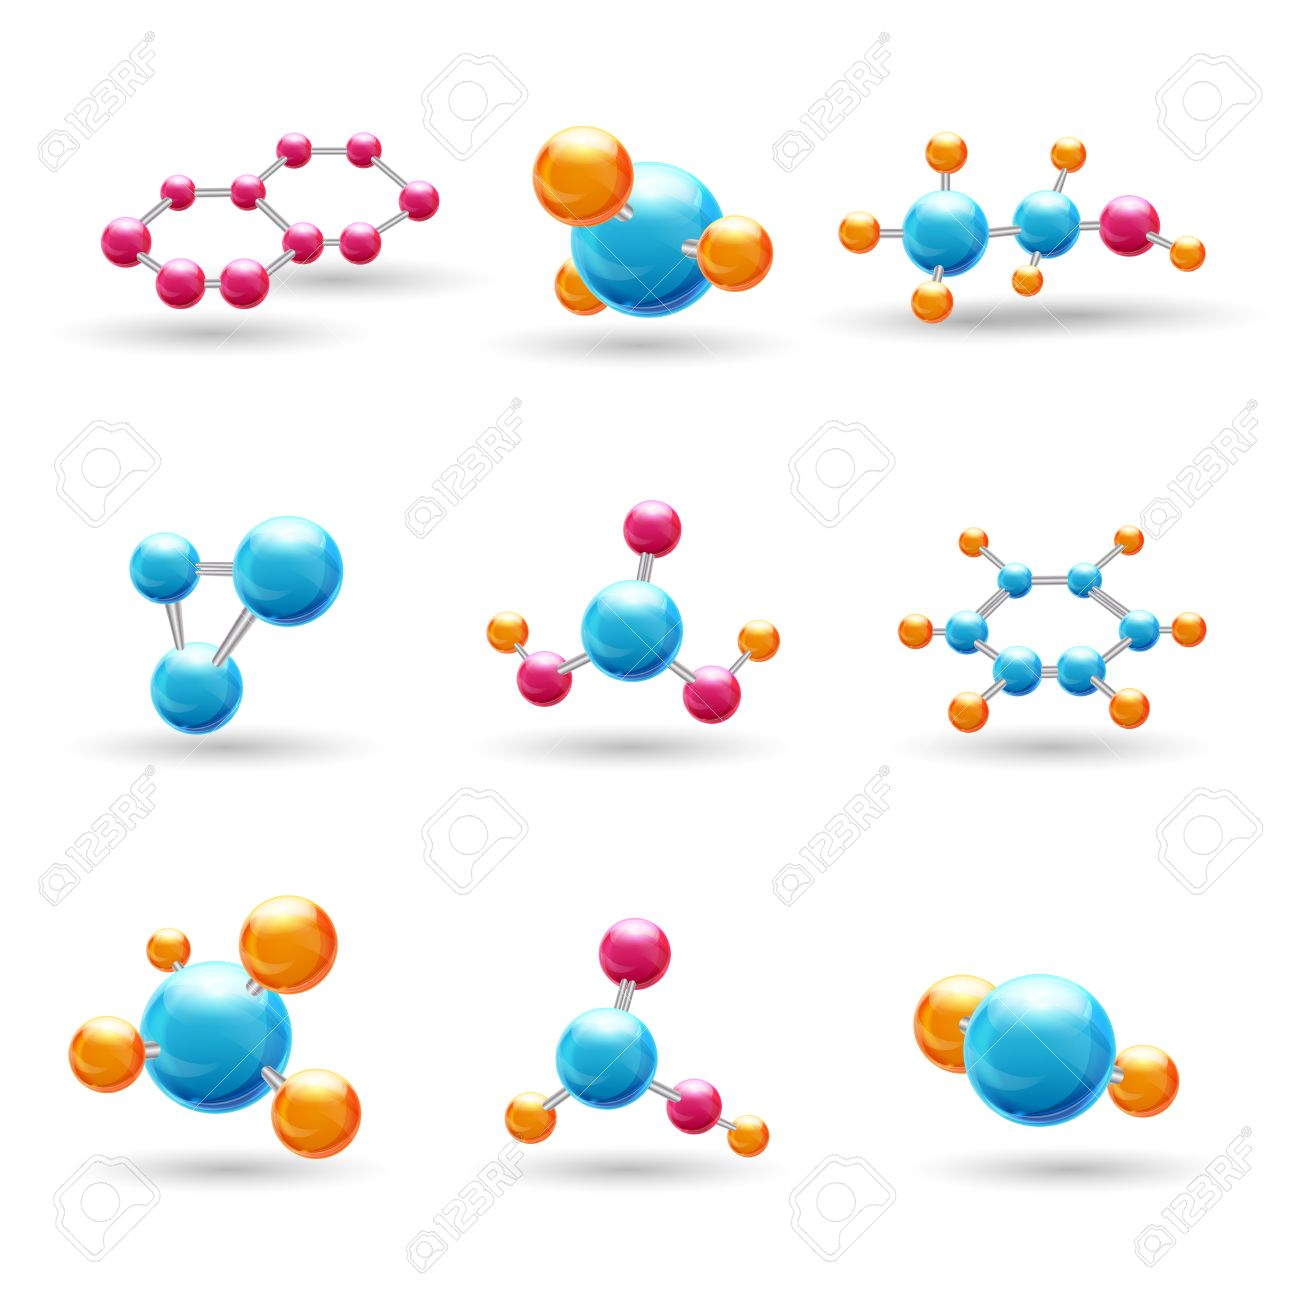 3d atomic structure chemical molecule models isolated vector 3d atomic structure chemical molecule models isolated vector illustration stock vector 32133167 ccuart Gallery